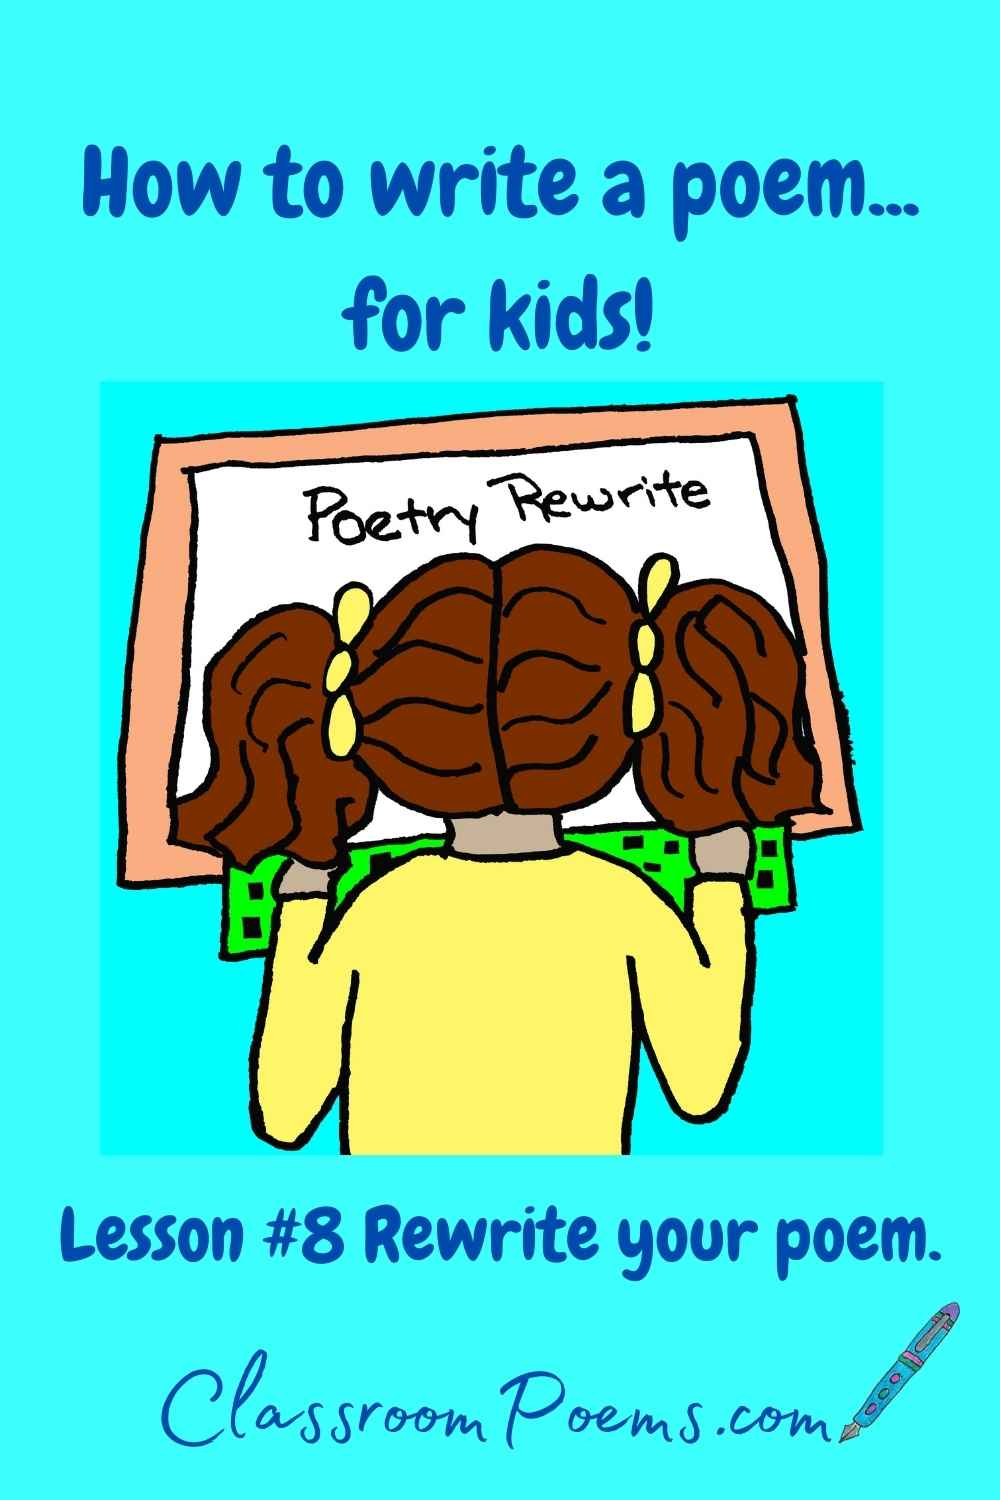 How to teach poetry to kids. Rewrite your poem.